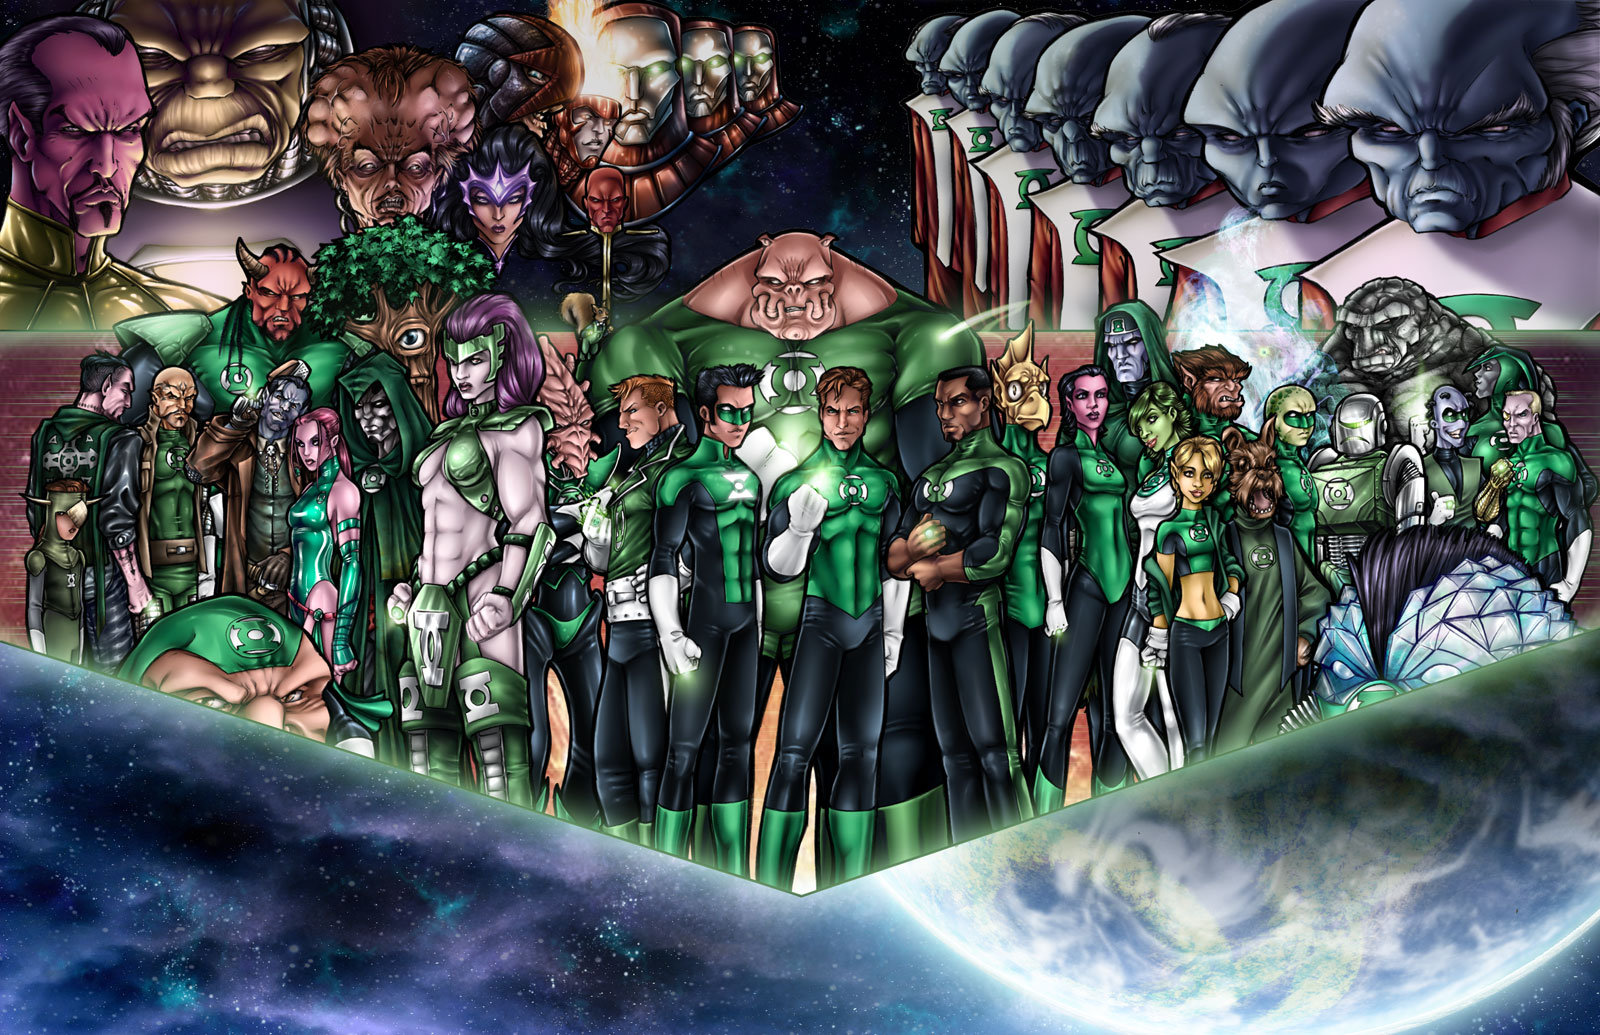 Green Lantern Corps by AdamWithers 1600x1035